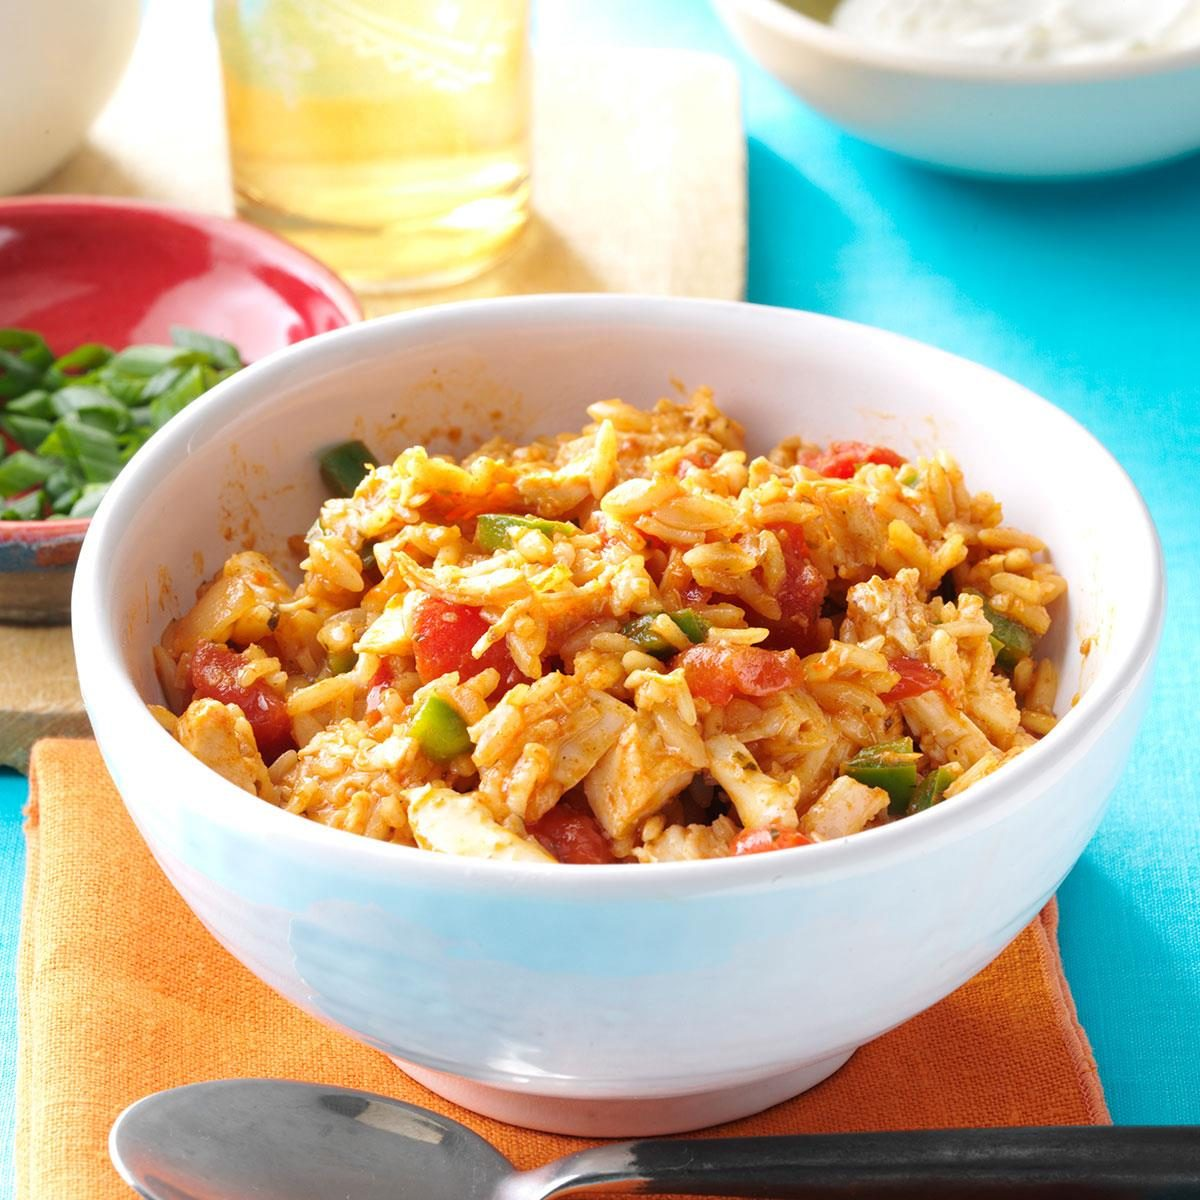 Tuesday: Mexican Rice with Chicken